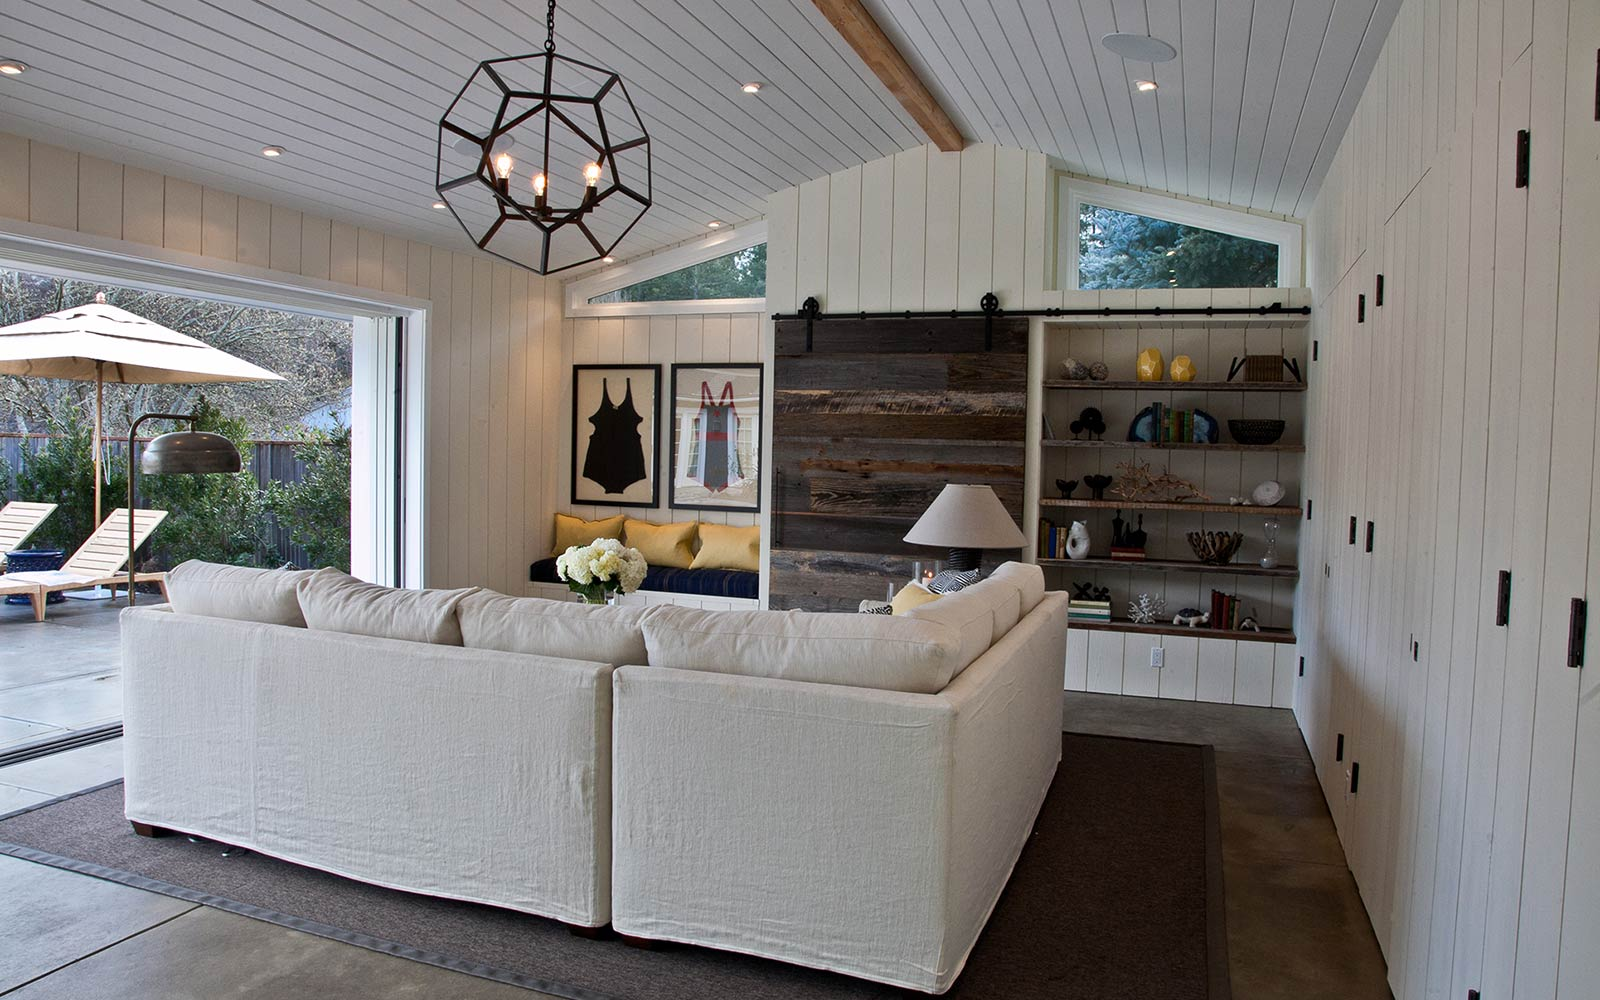 Contemporary pool house by Tiburon wealth interior designer.